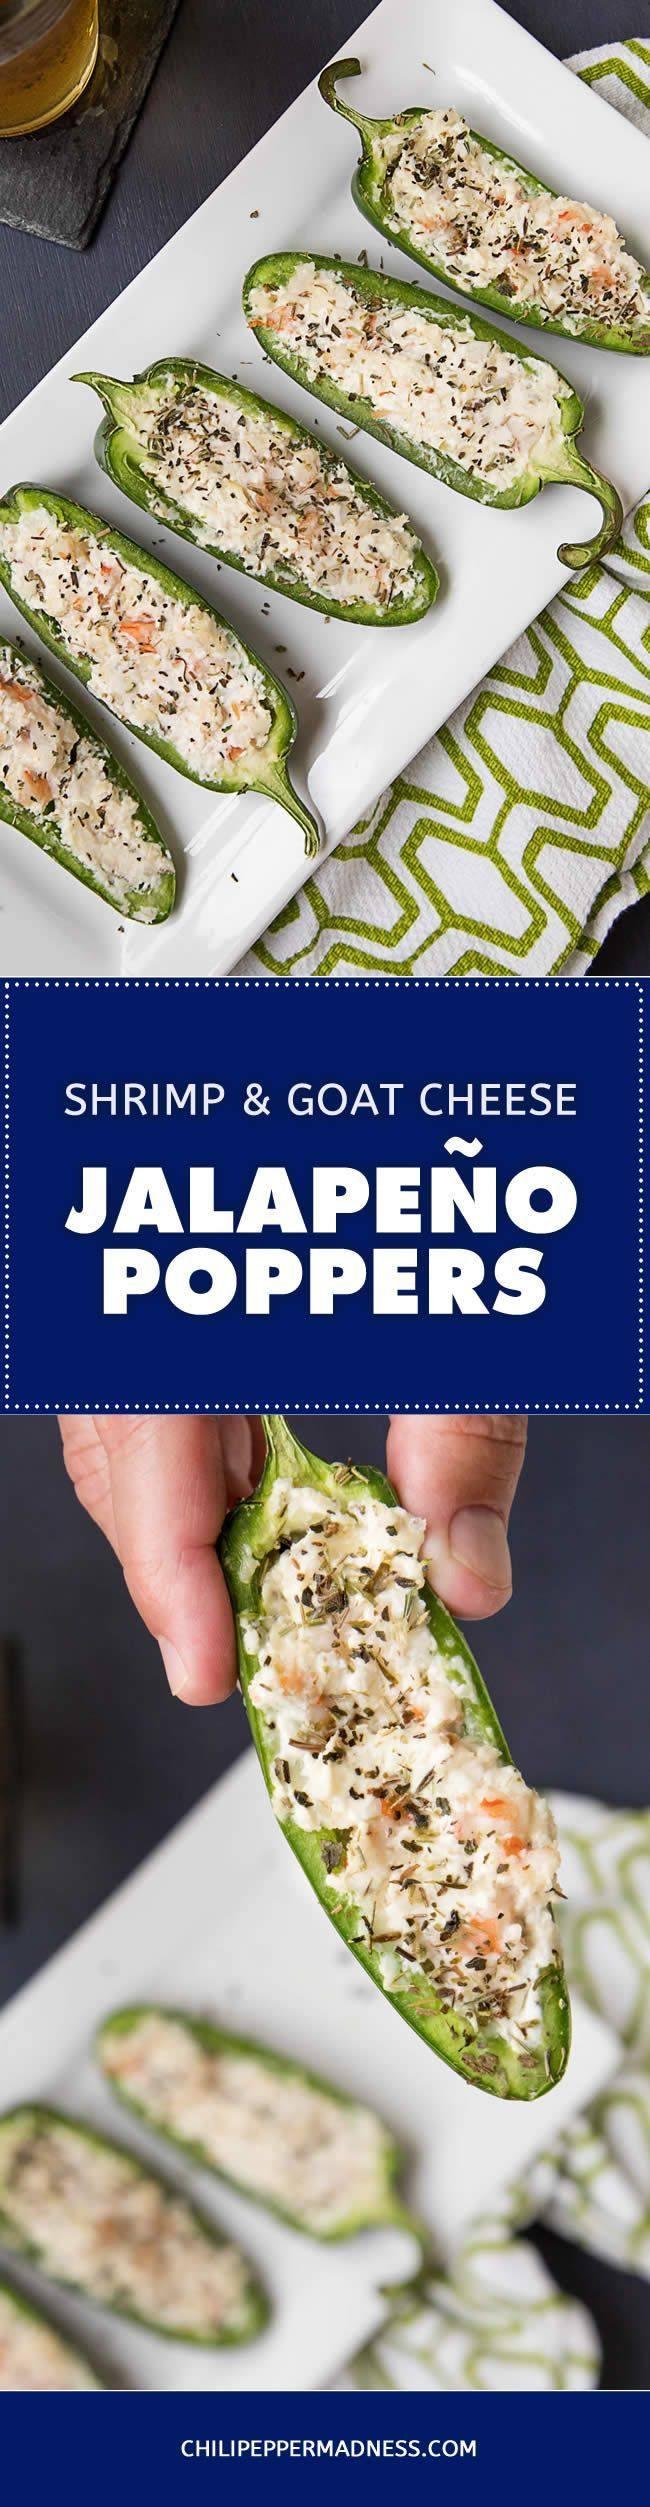 Shrimp and Goat Cheese Jalapeno Poppers – Bust out the appetizers for your next party with this recipe of jalapeno poppers stuffed with a mixture of goat cheese, Parmesan, seared shrimp and loads of herbs. It's popper time!   #jalapeno #jalapenopoppers #poppers #appetizer #partyfood #gameday #gamedayfood #recipe #recipeoftheday #recipeideas #recipesharing #chilipeppermadness #spicyfood #spicylife #delish #tasty #foodblogeats #spicy #recipes #ilovecooking #feedfeed #buzzfeast #cookit…